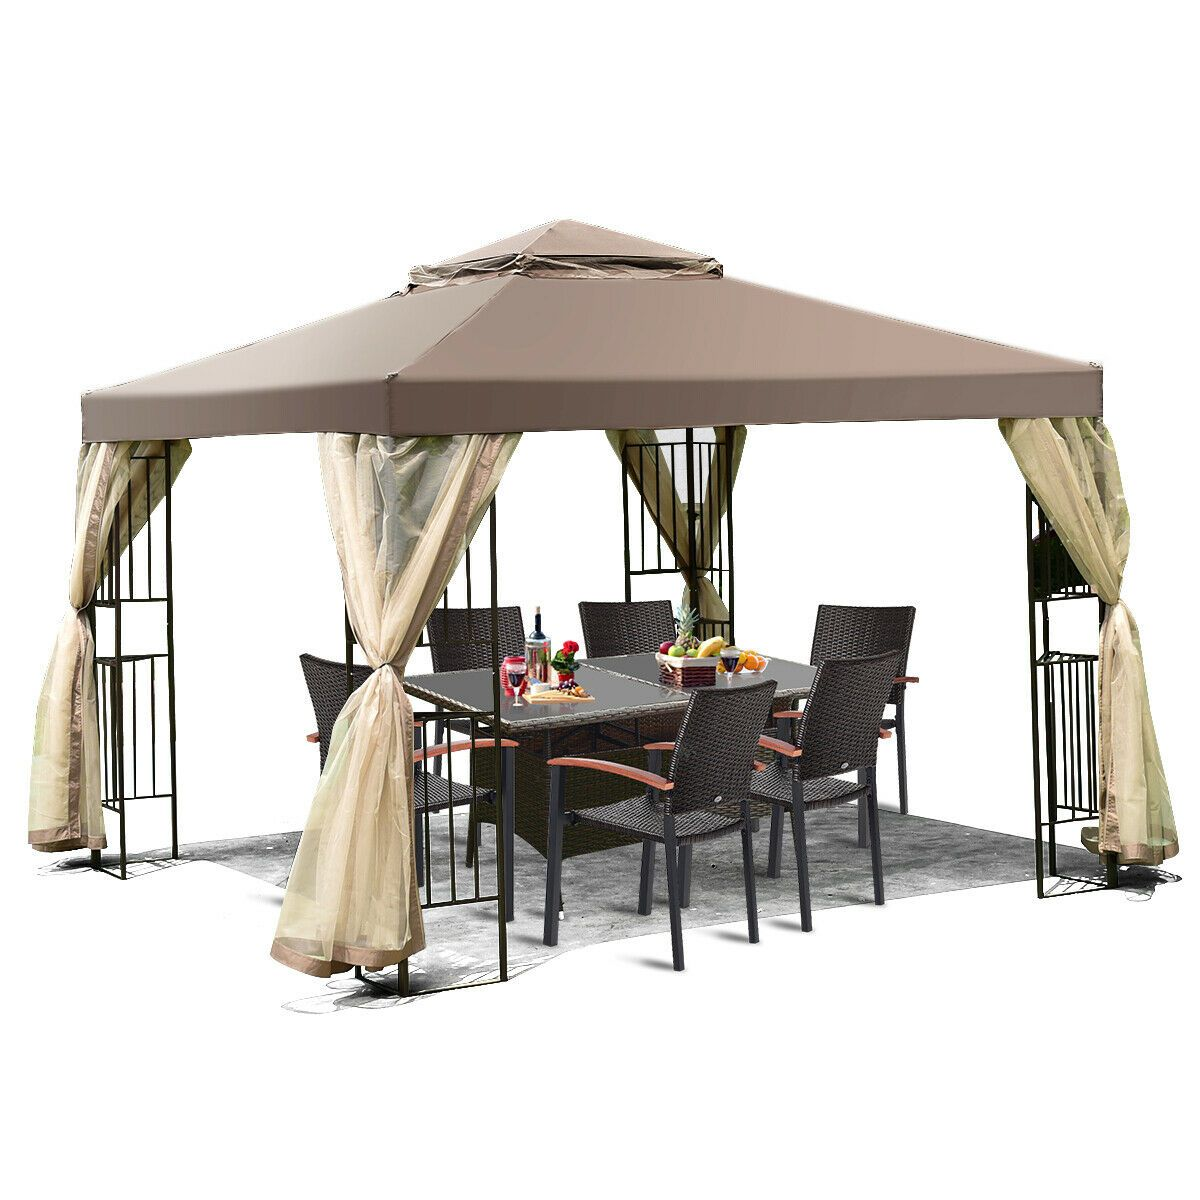 Outdoor 10 X10 Gazebo Canopy Shelter Awning Tent Patio Garden New Patio Gazebo Gazebo Canopy Canopy Tent